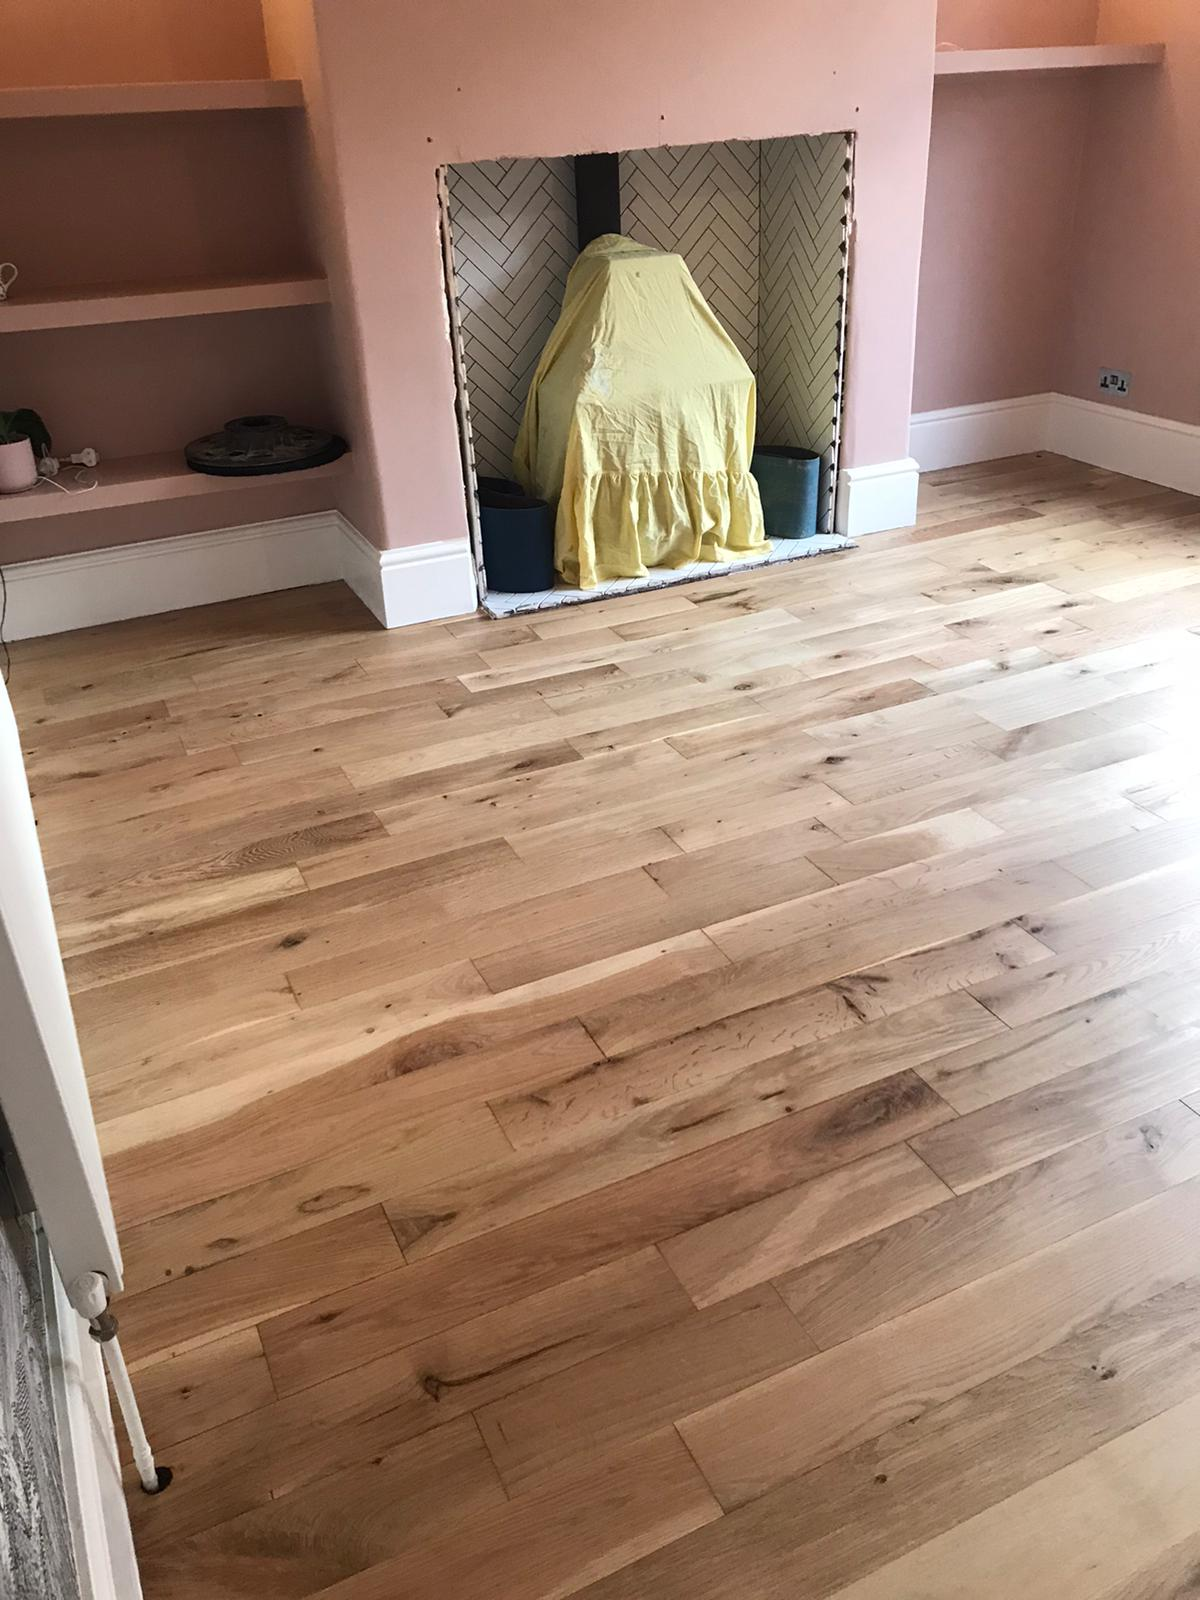 Oak floor sanded and lacquered